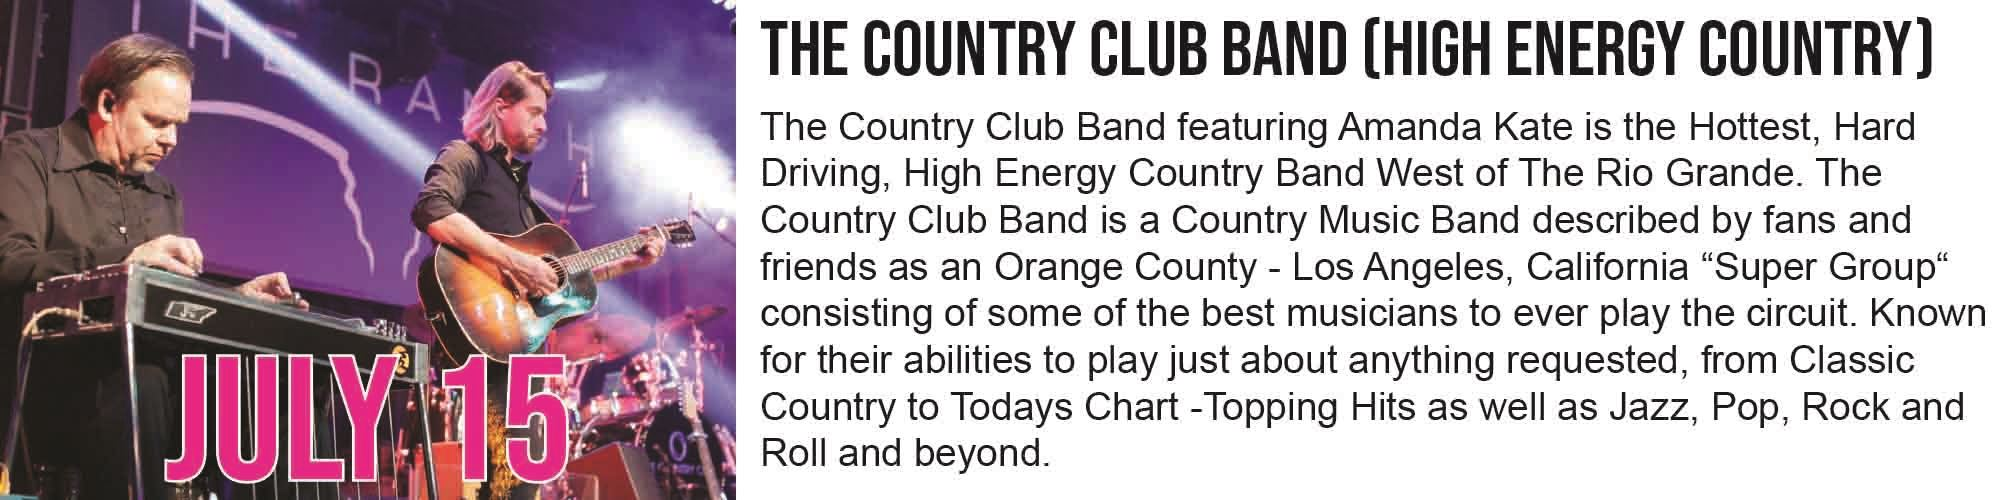 Country Club Band Graphic